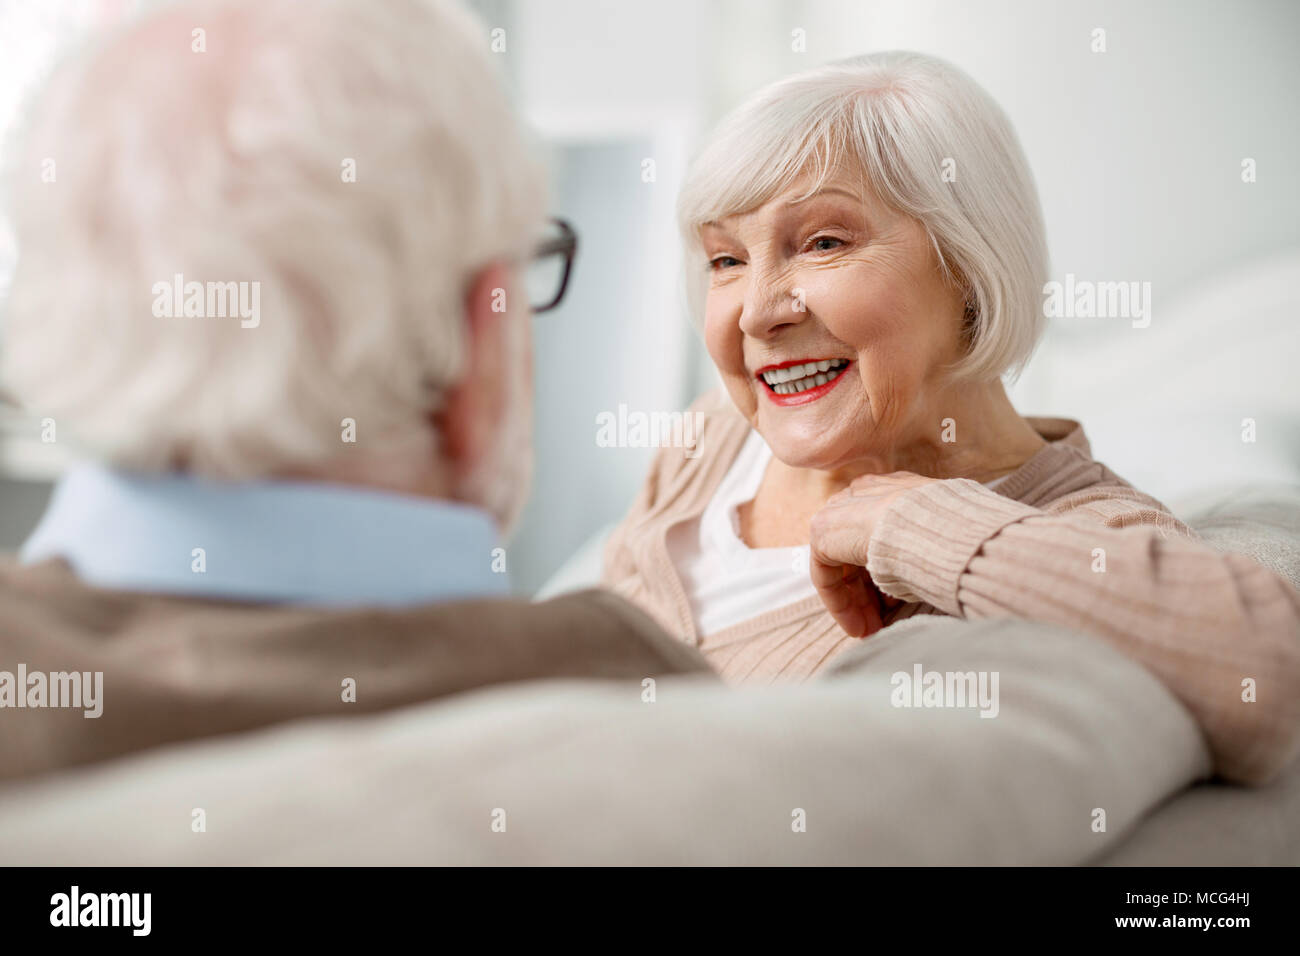 Portrait of happy elderly woman - Stock Image